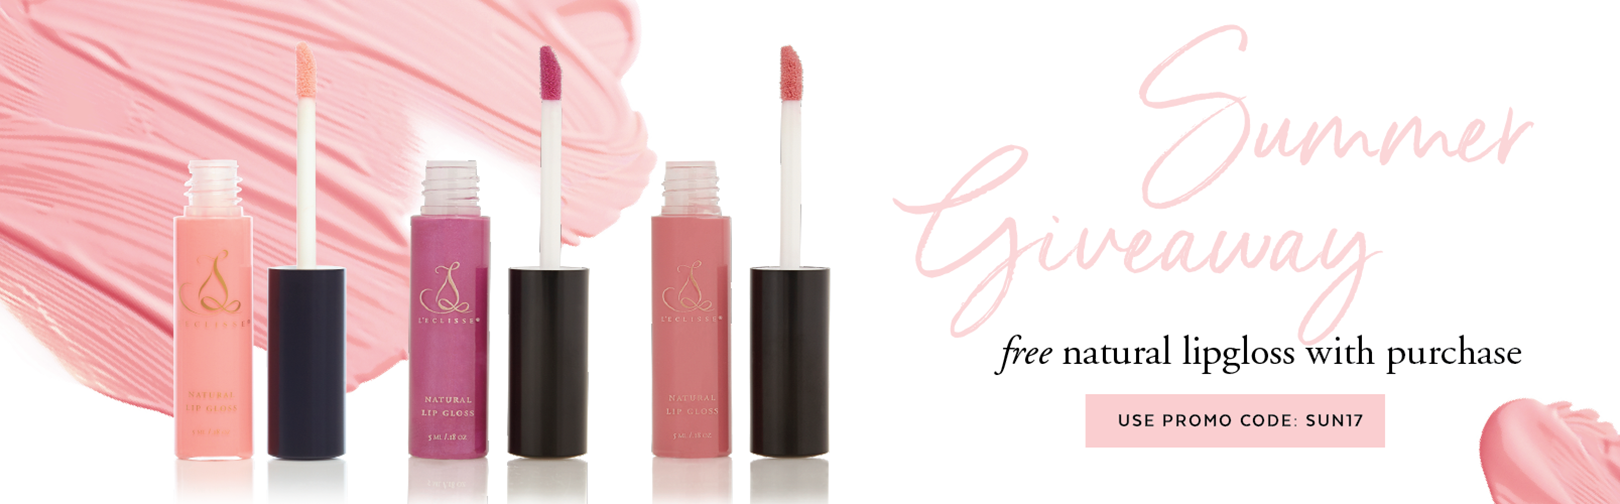 Summer Giveaway - free natural lipgloss with purchase.  Use promo code: SUN17